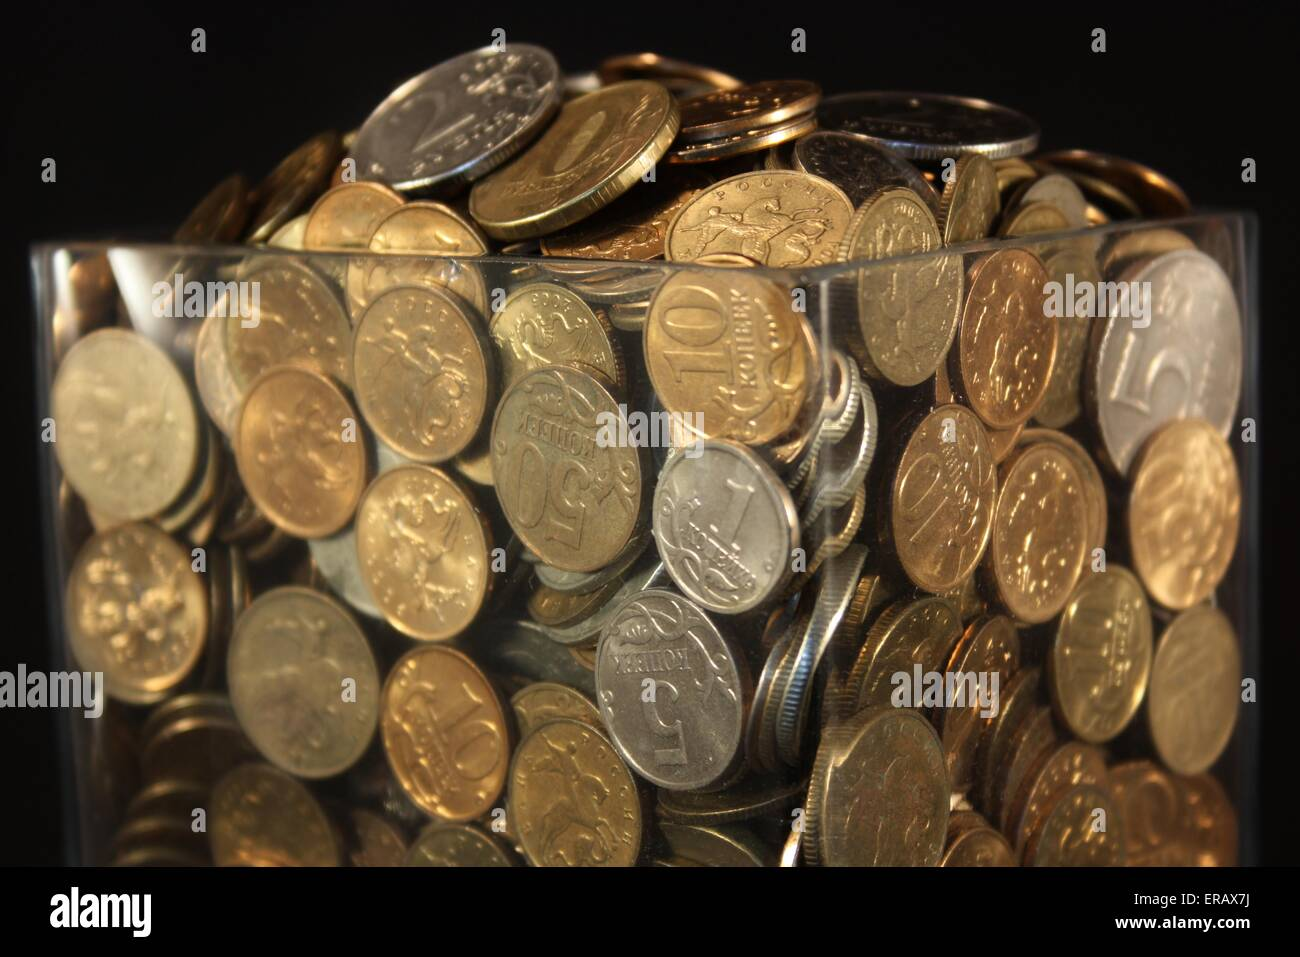 Coins in a glass jar on a black background - Stock Image